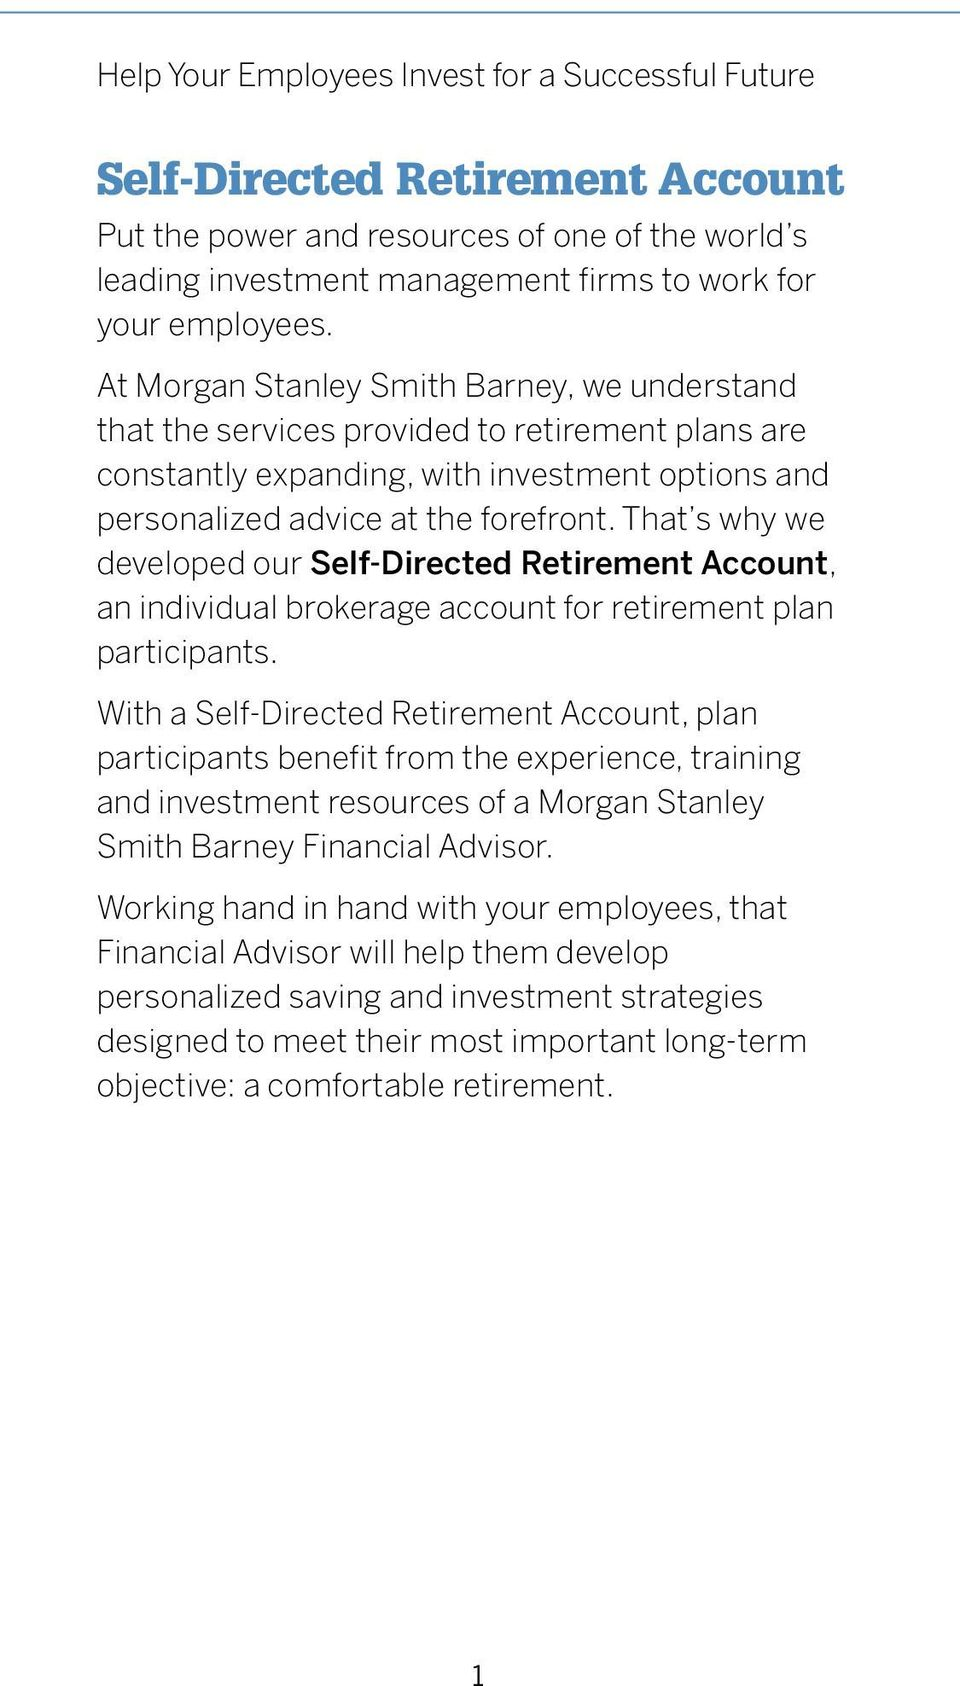 That s why we developed our Self-Directed Retirement Account, an individual brokerage account for retirement plan participants.